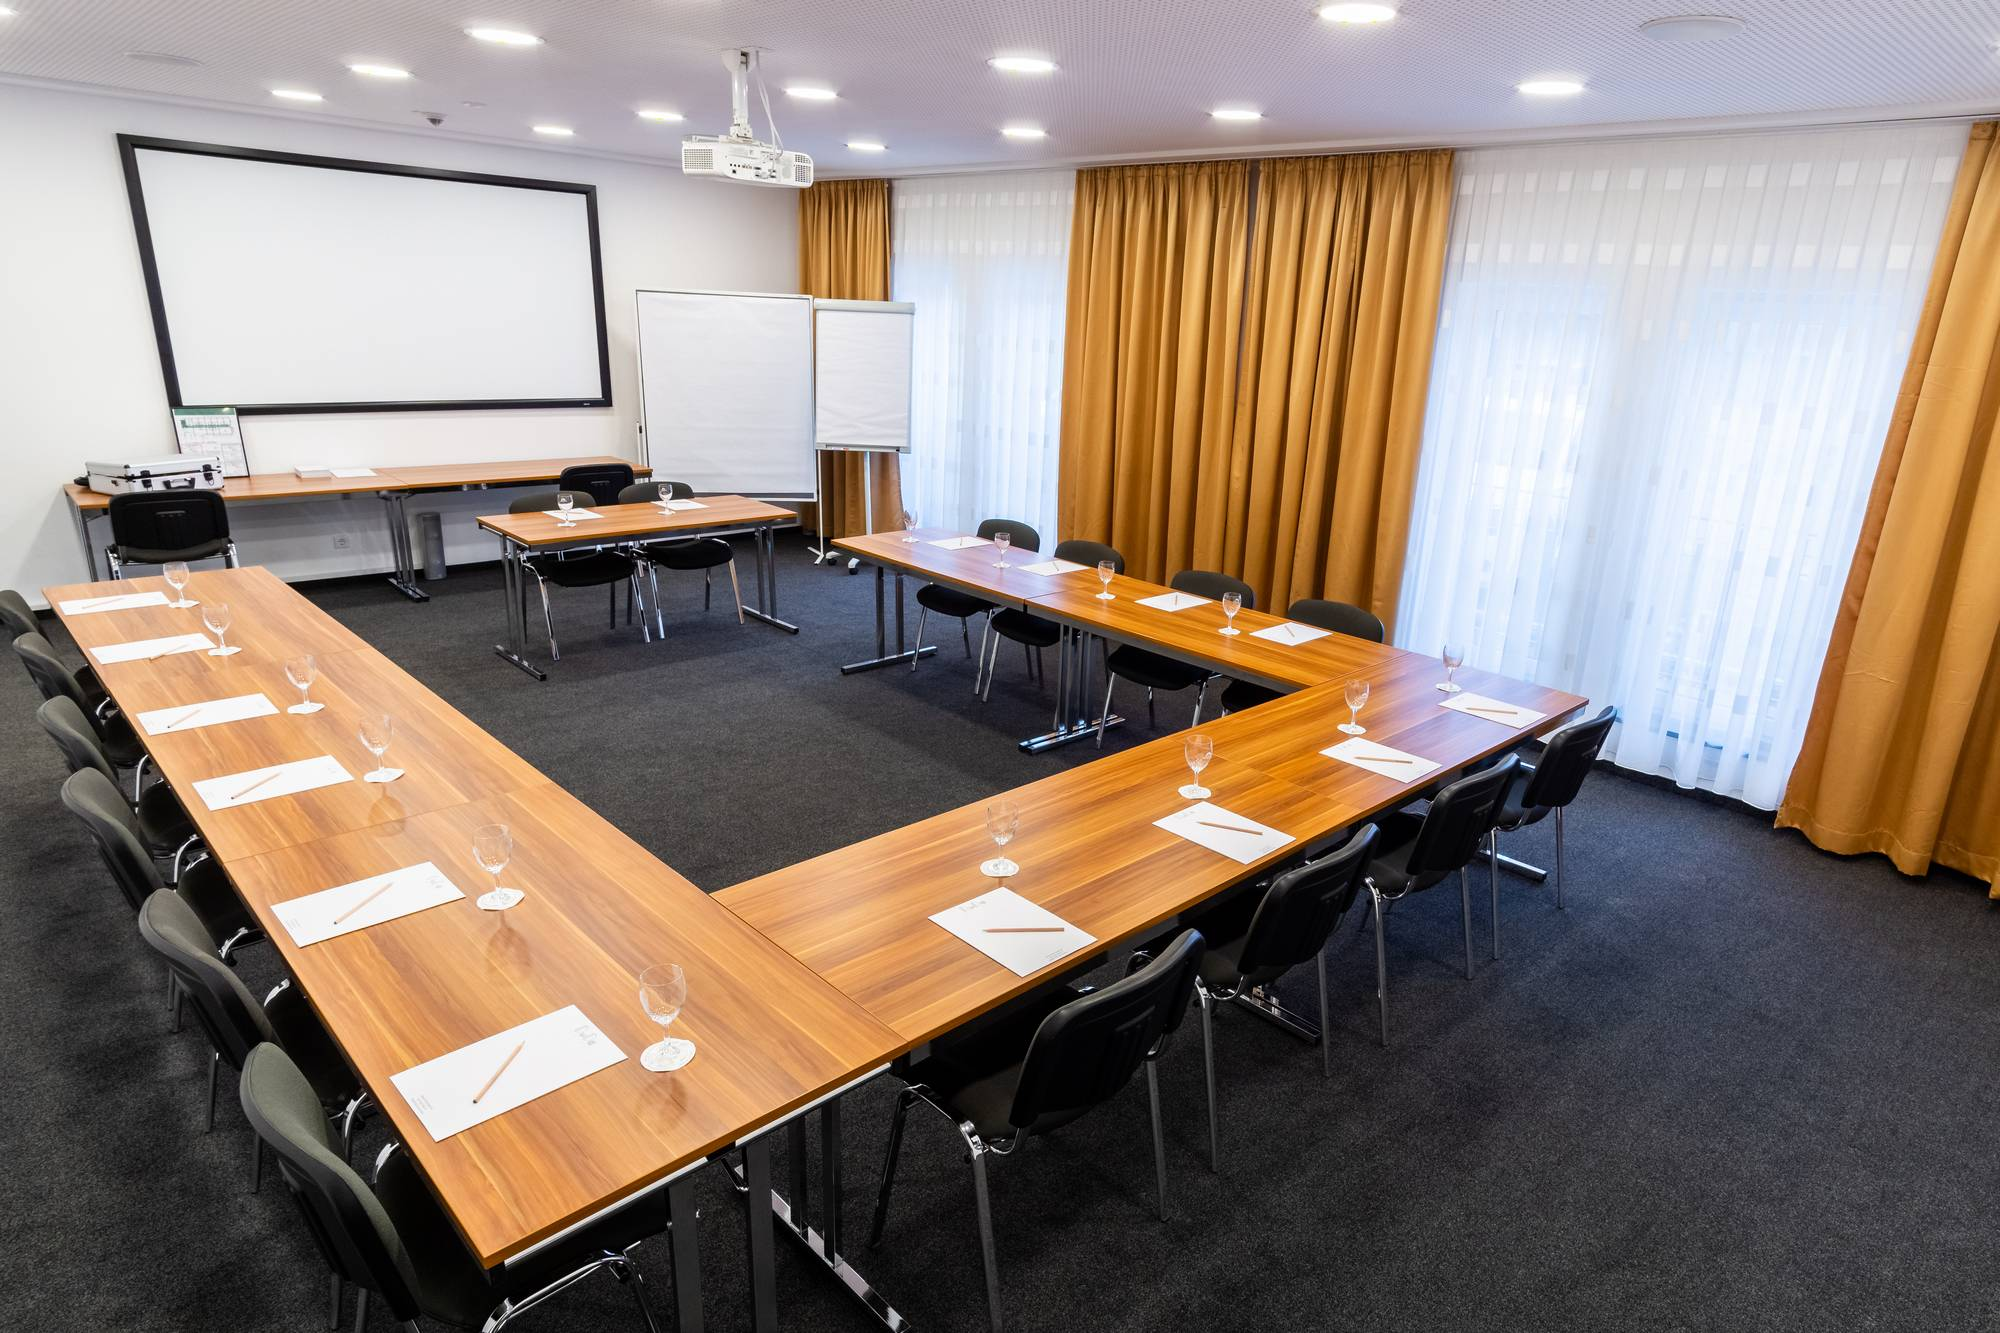 Hotel-DuDa - Meeting room Var 2